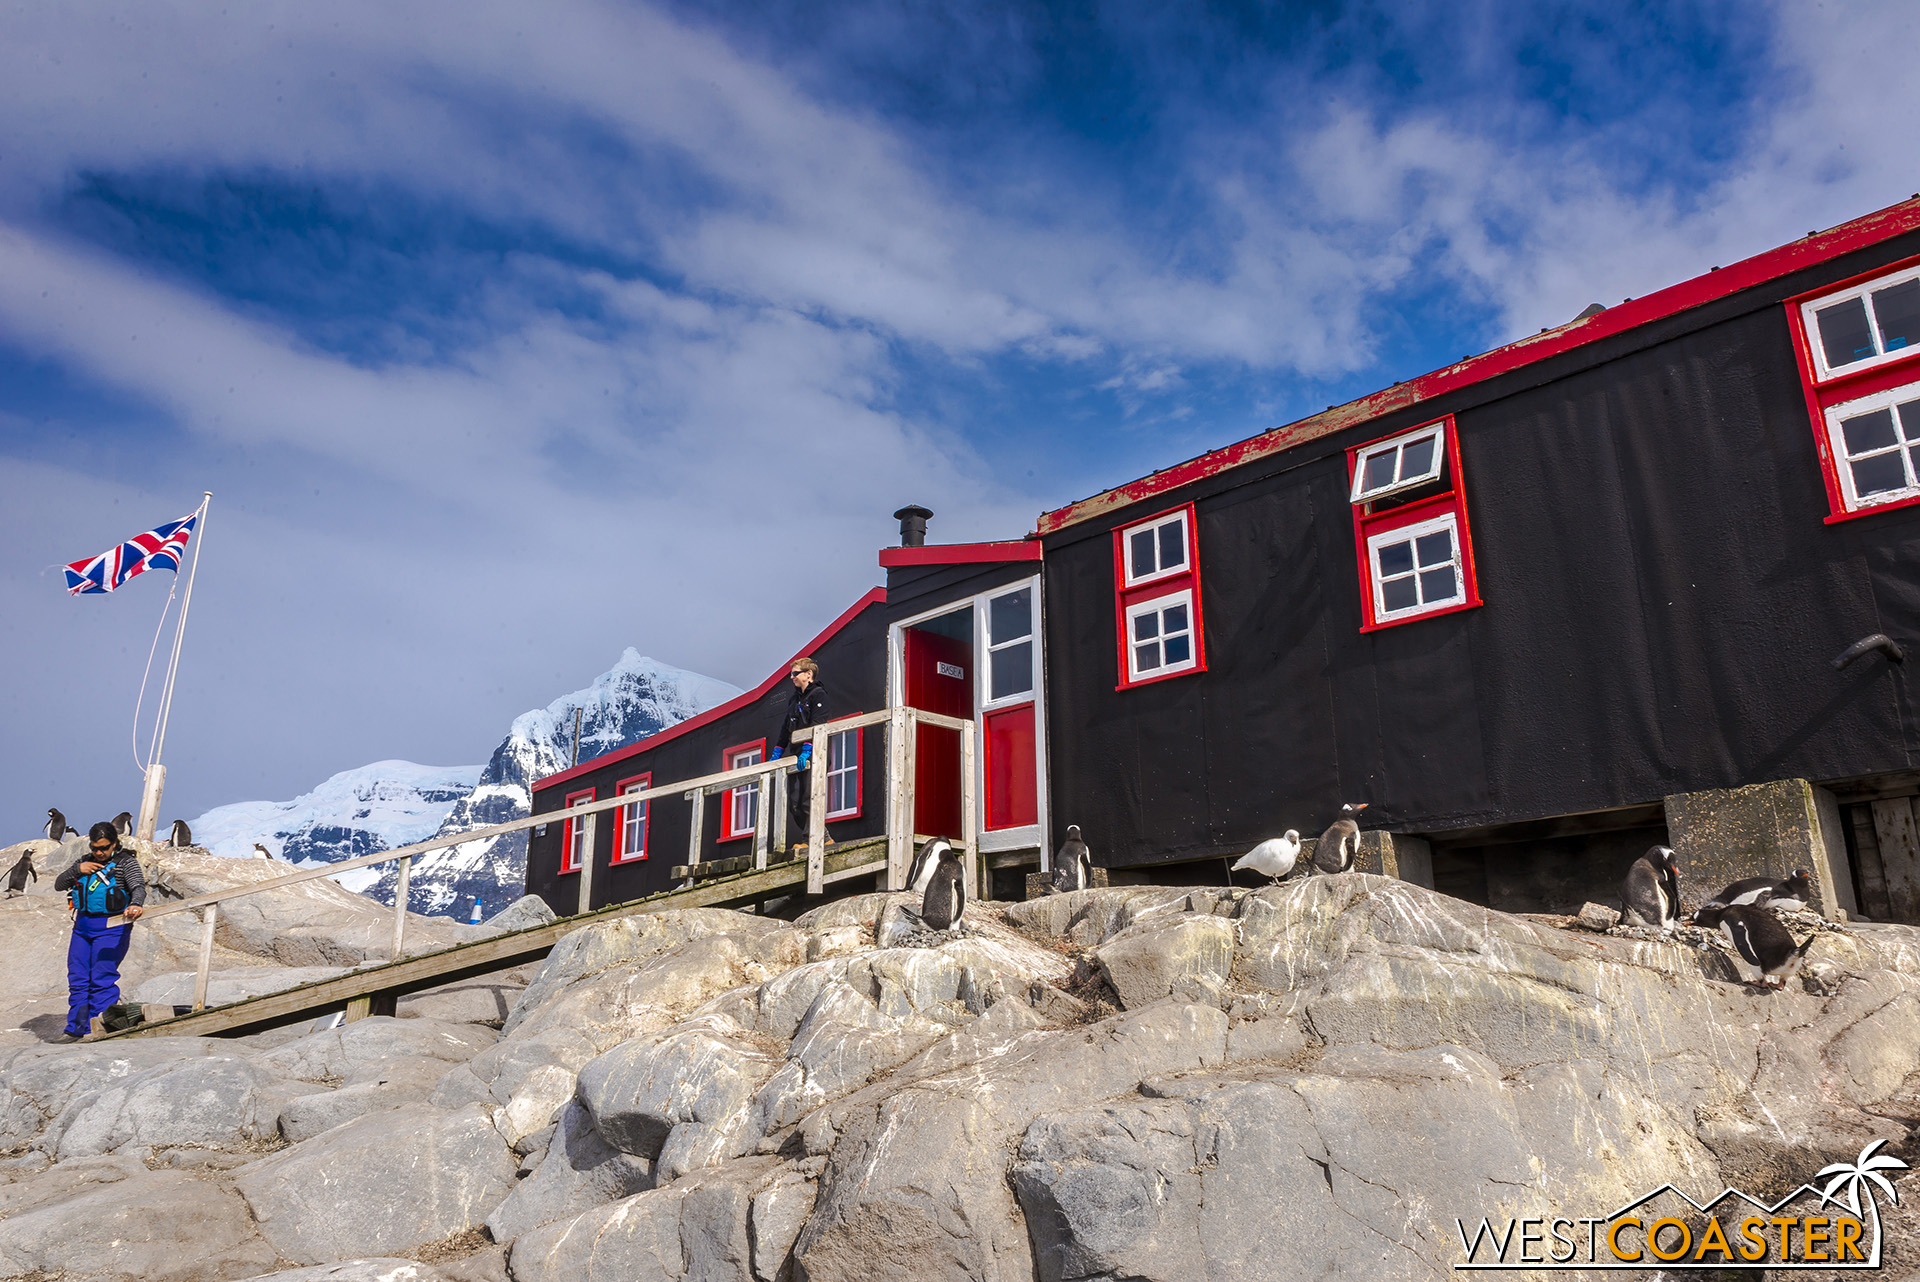 The museum at Port Lockroy.